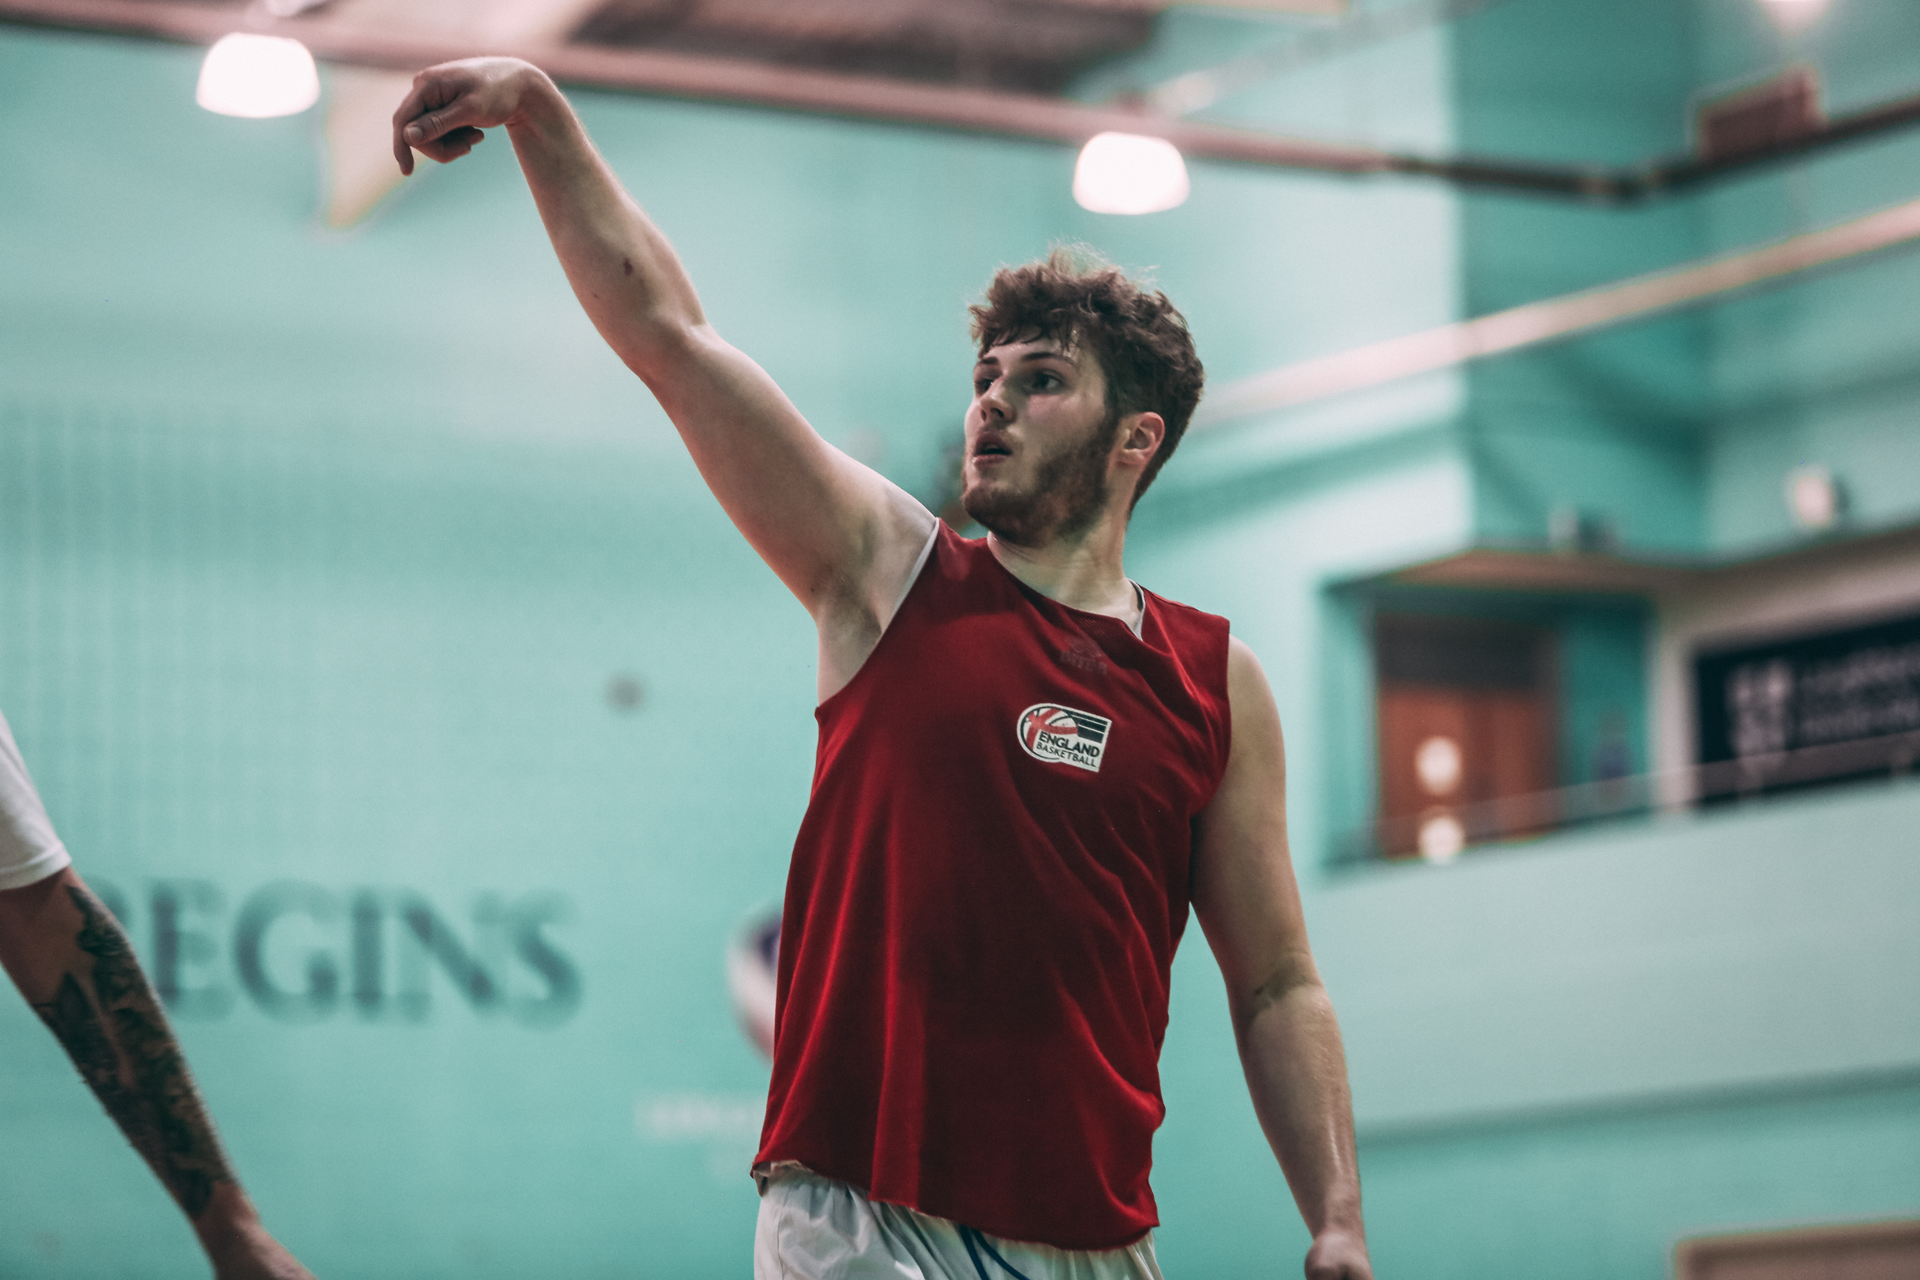 Chris Linsley Returns to the UK & joins Loughborough Riders